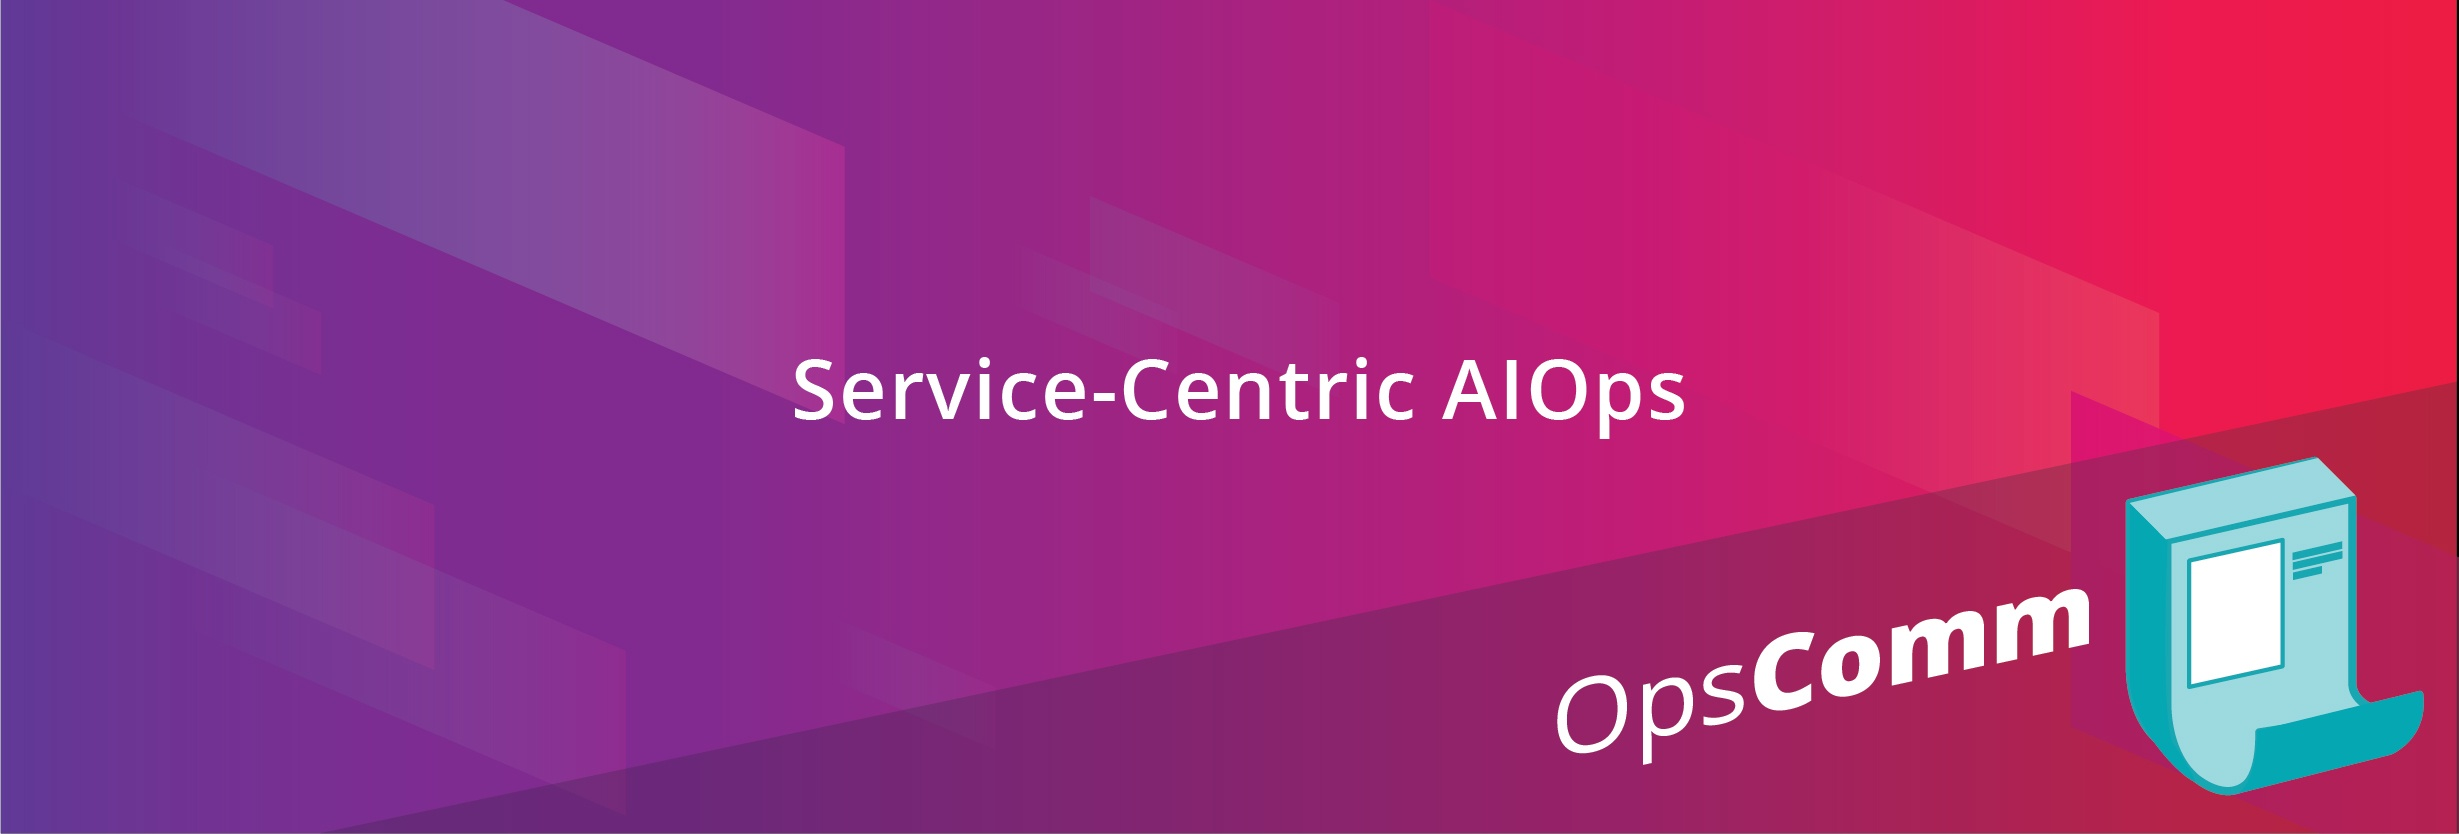 OpsRamp In The News: Get Ready For Digital-Scale IT Operations Management With Service-Centric AIOps